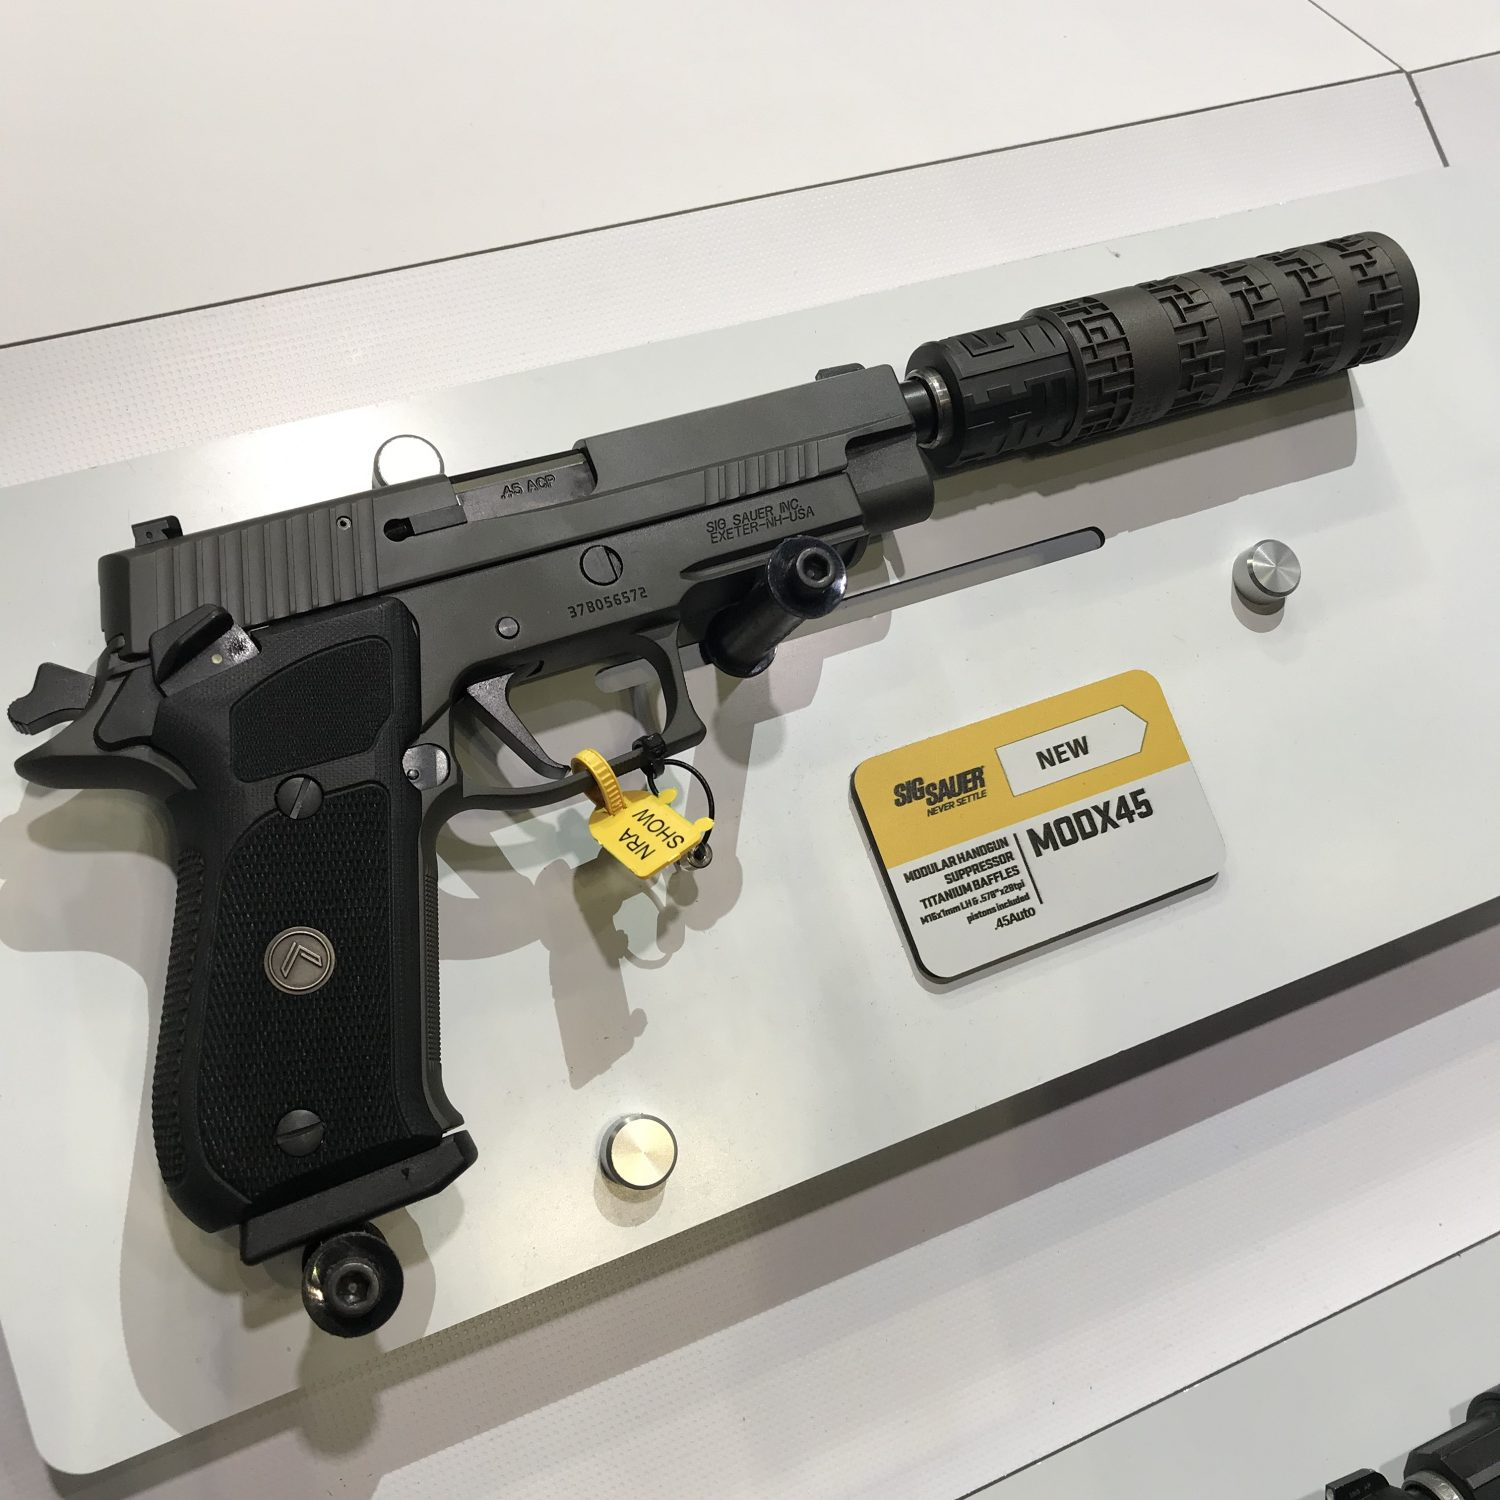 NRA 2019] SIG Sauer's New Products -The Firearm Blog